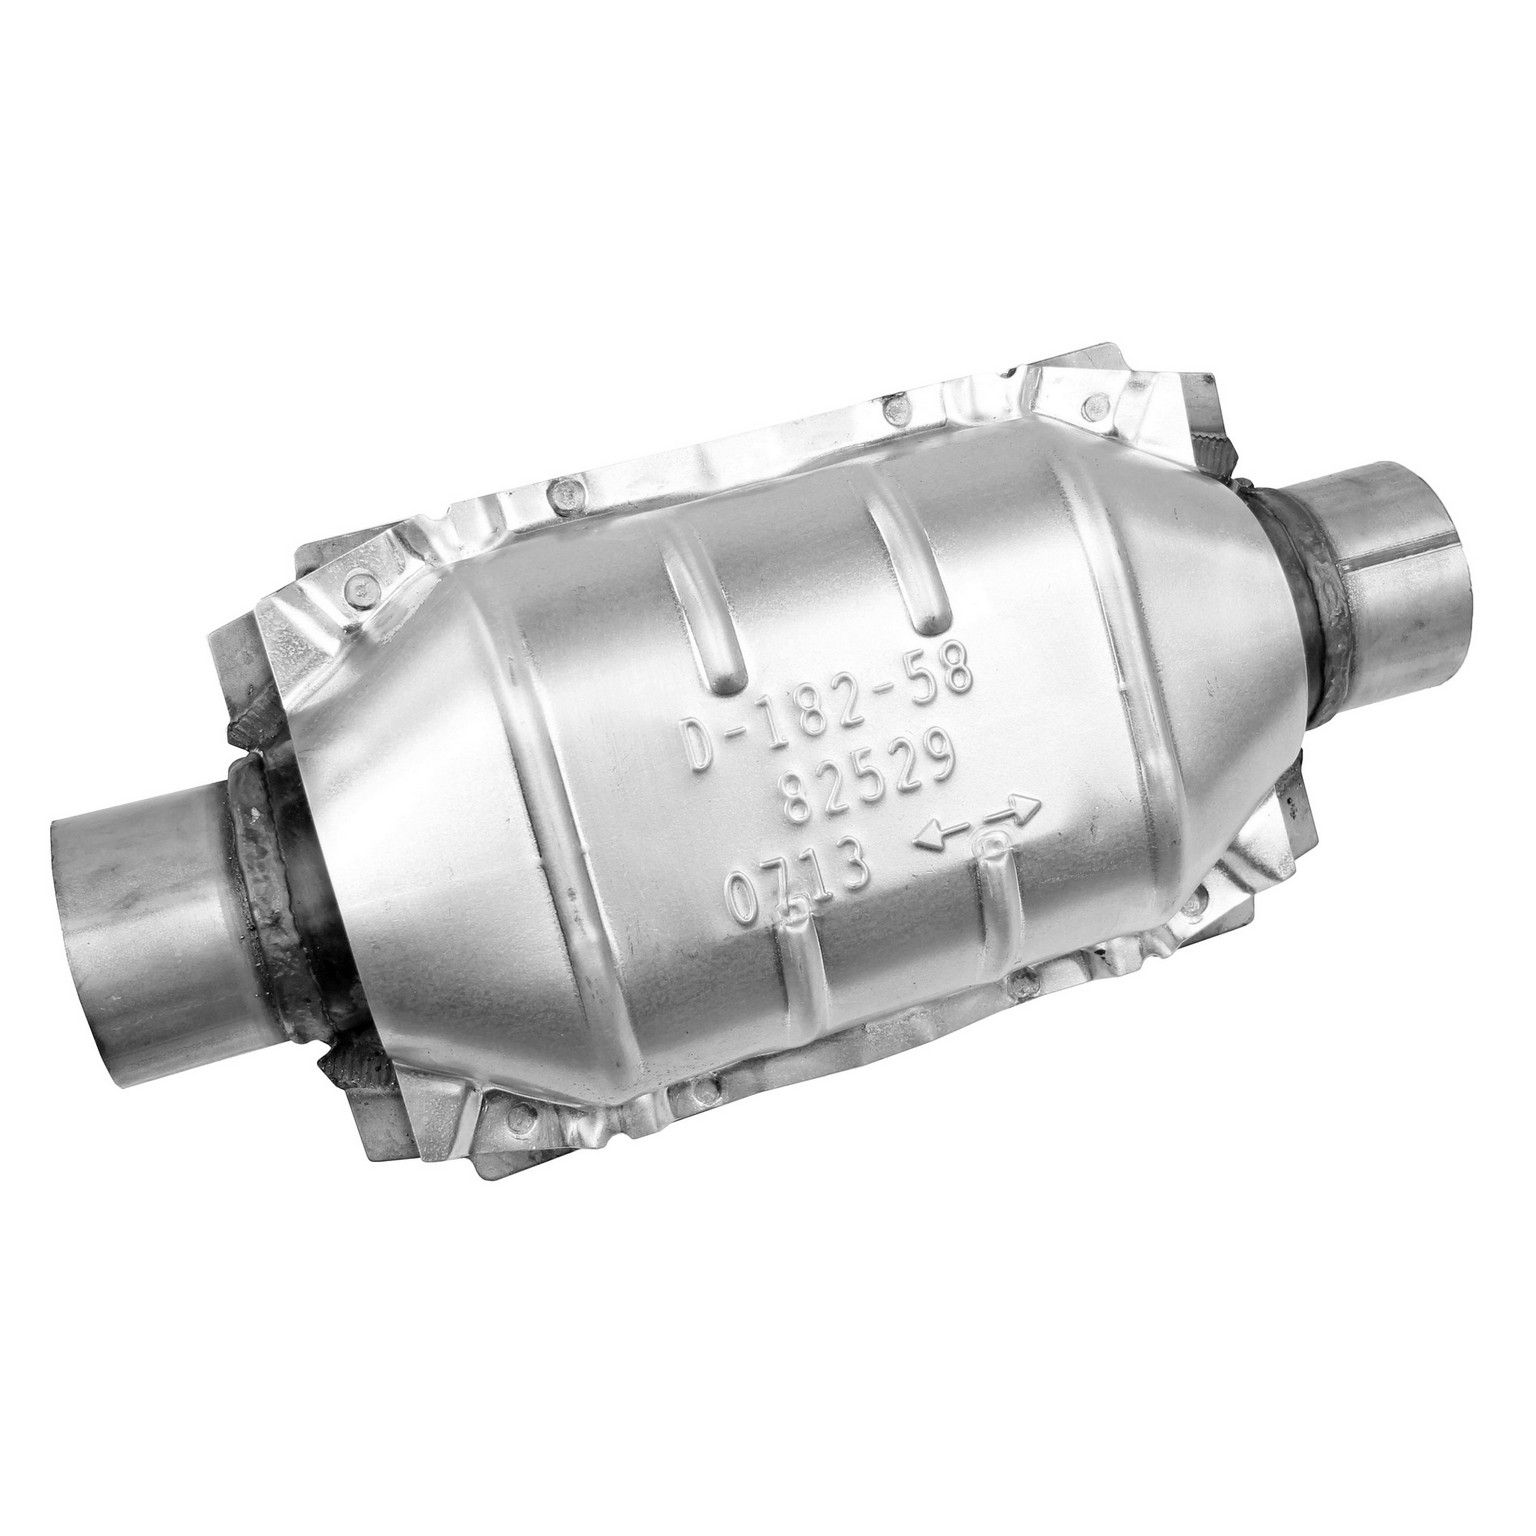 2000 Lexus Ls400 Catalytic Converter Left 8 Cyl 40l Walker 82529 Engine Family Ytyxv040dda Legal For Use In The States Of California And New York: 1994 Lexus Ls400 Catalytic Converter At Woreks.co